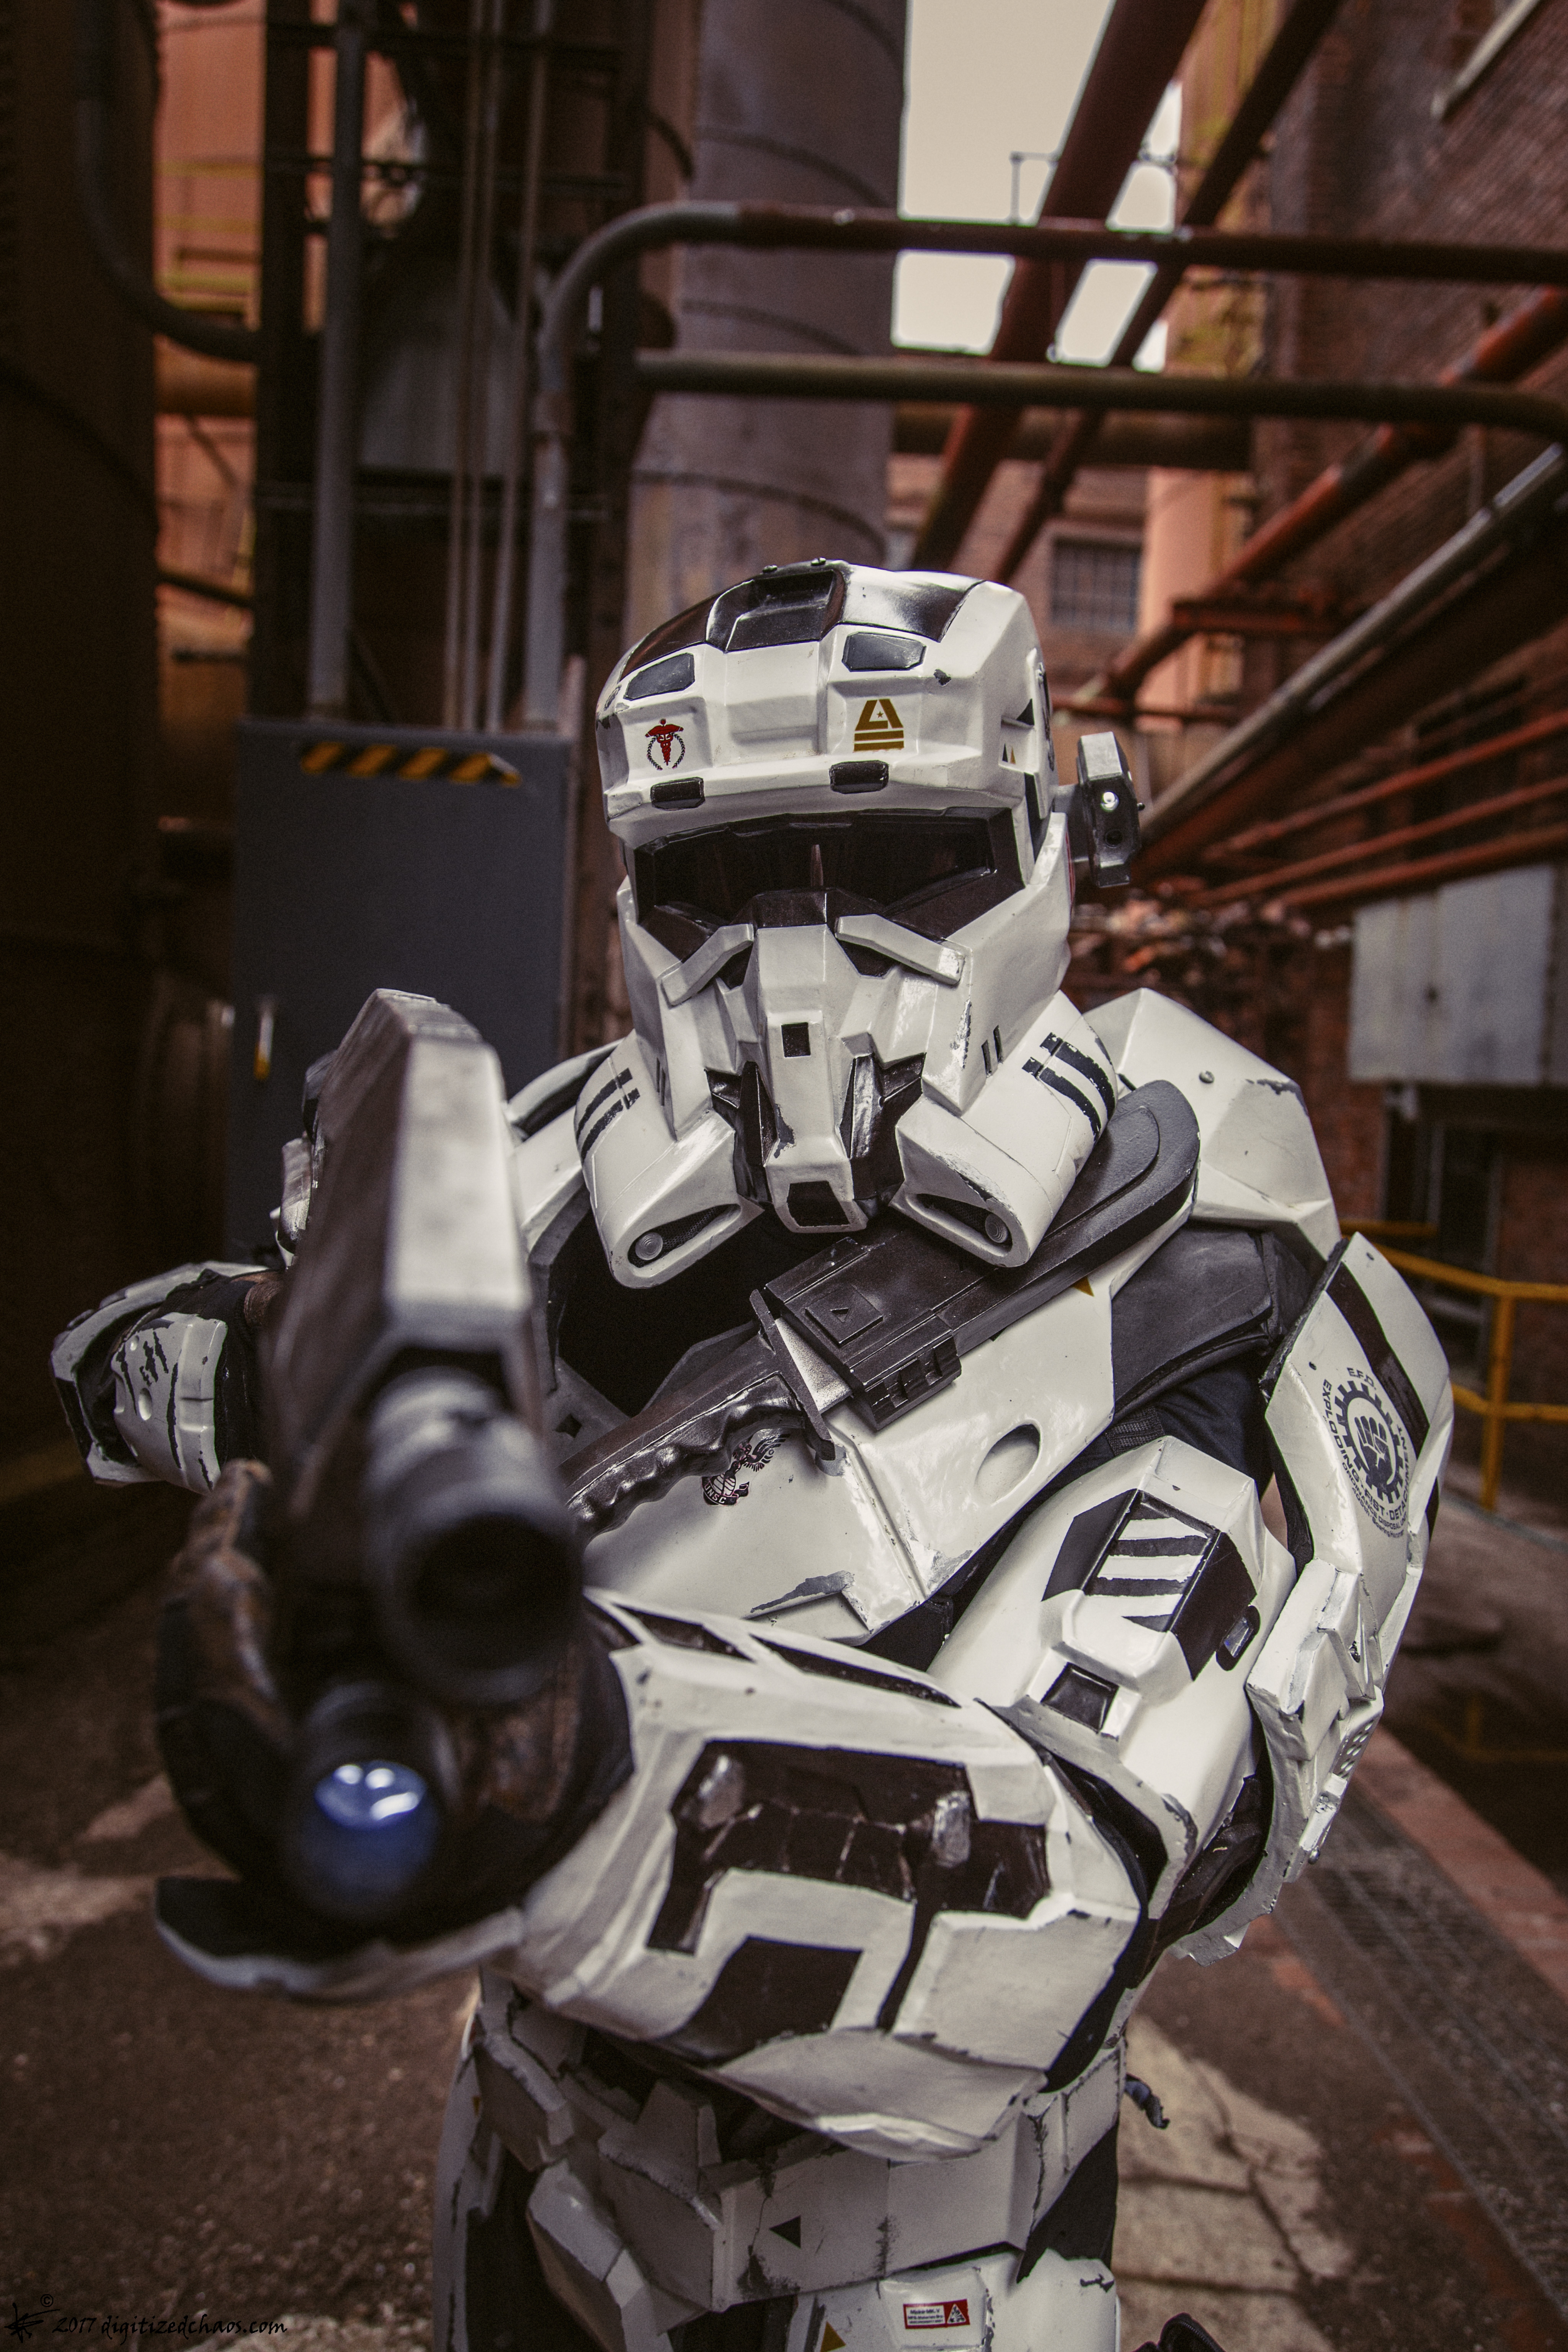 HALO REACH EOD | Halo Costume and Prop Maker Community - 405th